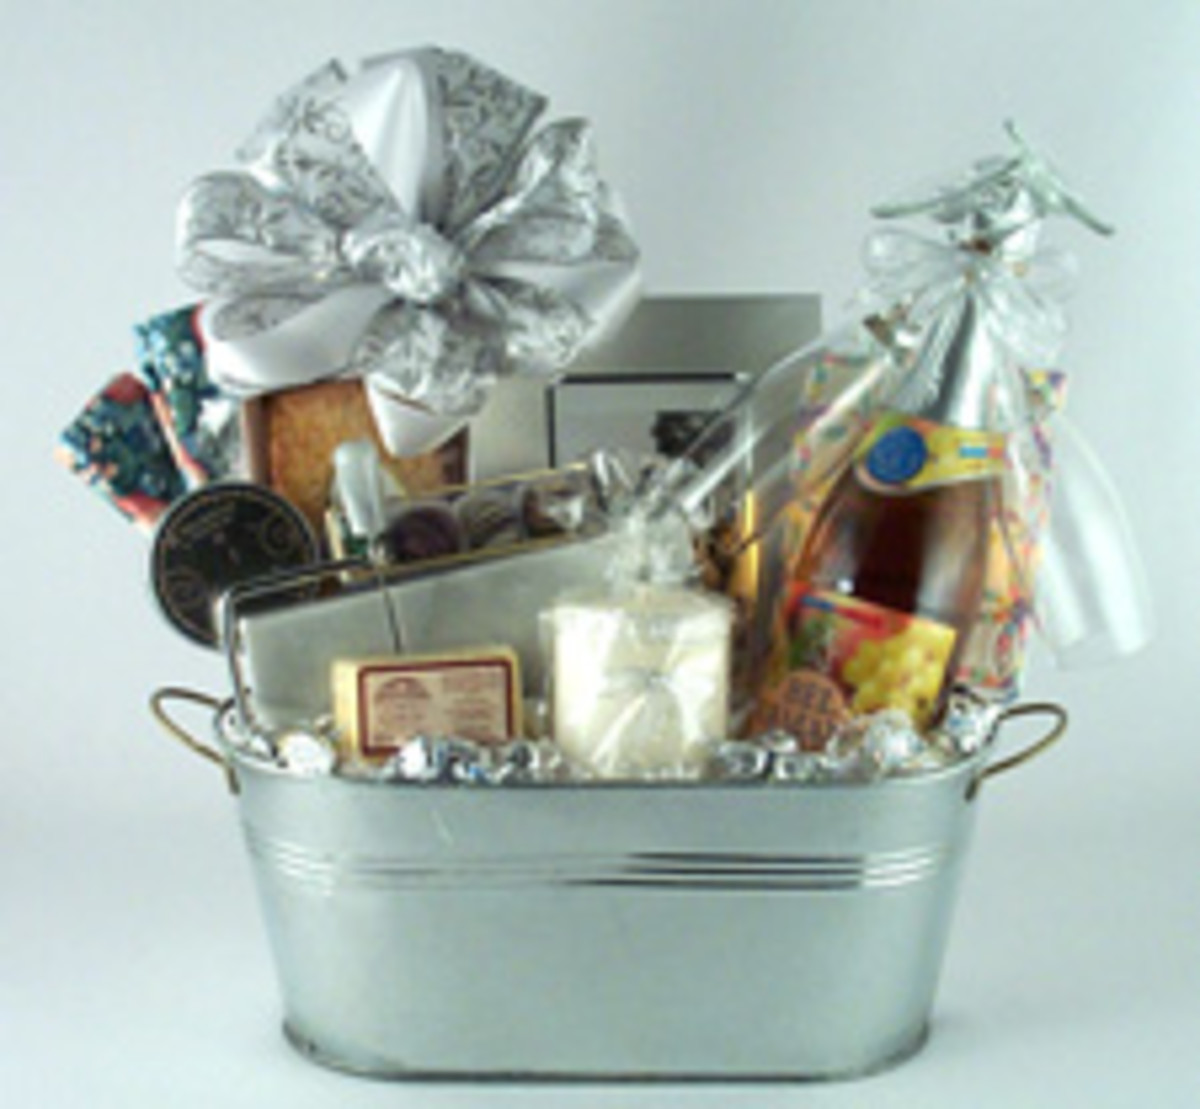 Silver Wedding Anniversary Gift Ideas Parents : 25th Silver Wedding Anniversary Gift Basket - GB300